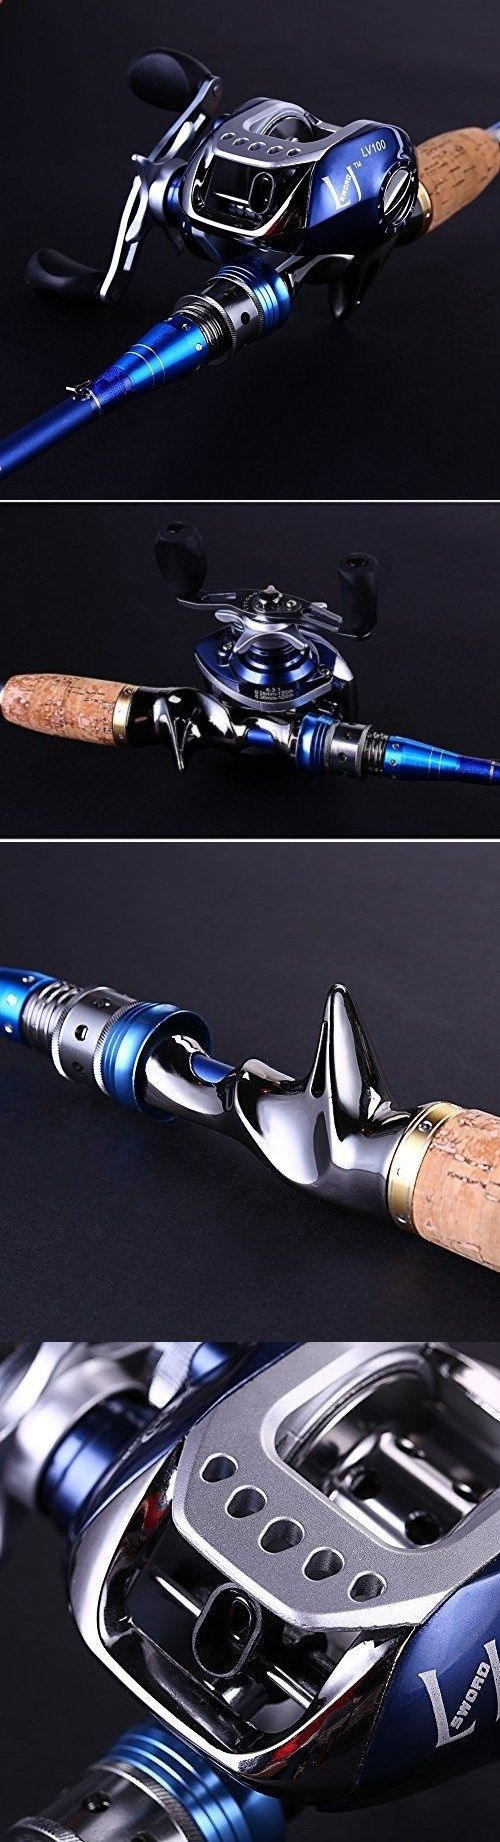 Fishing Reels - Baitcasting Combos 179954: 2 Ps Baitcasting Fishing Rod With Fishing Reel Combos (Right) -> BUY IT NOW ONLY: $117.95 on eBay!